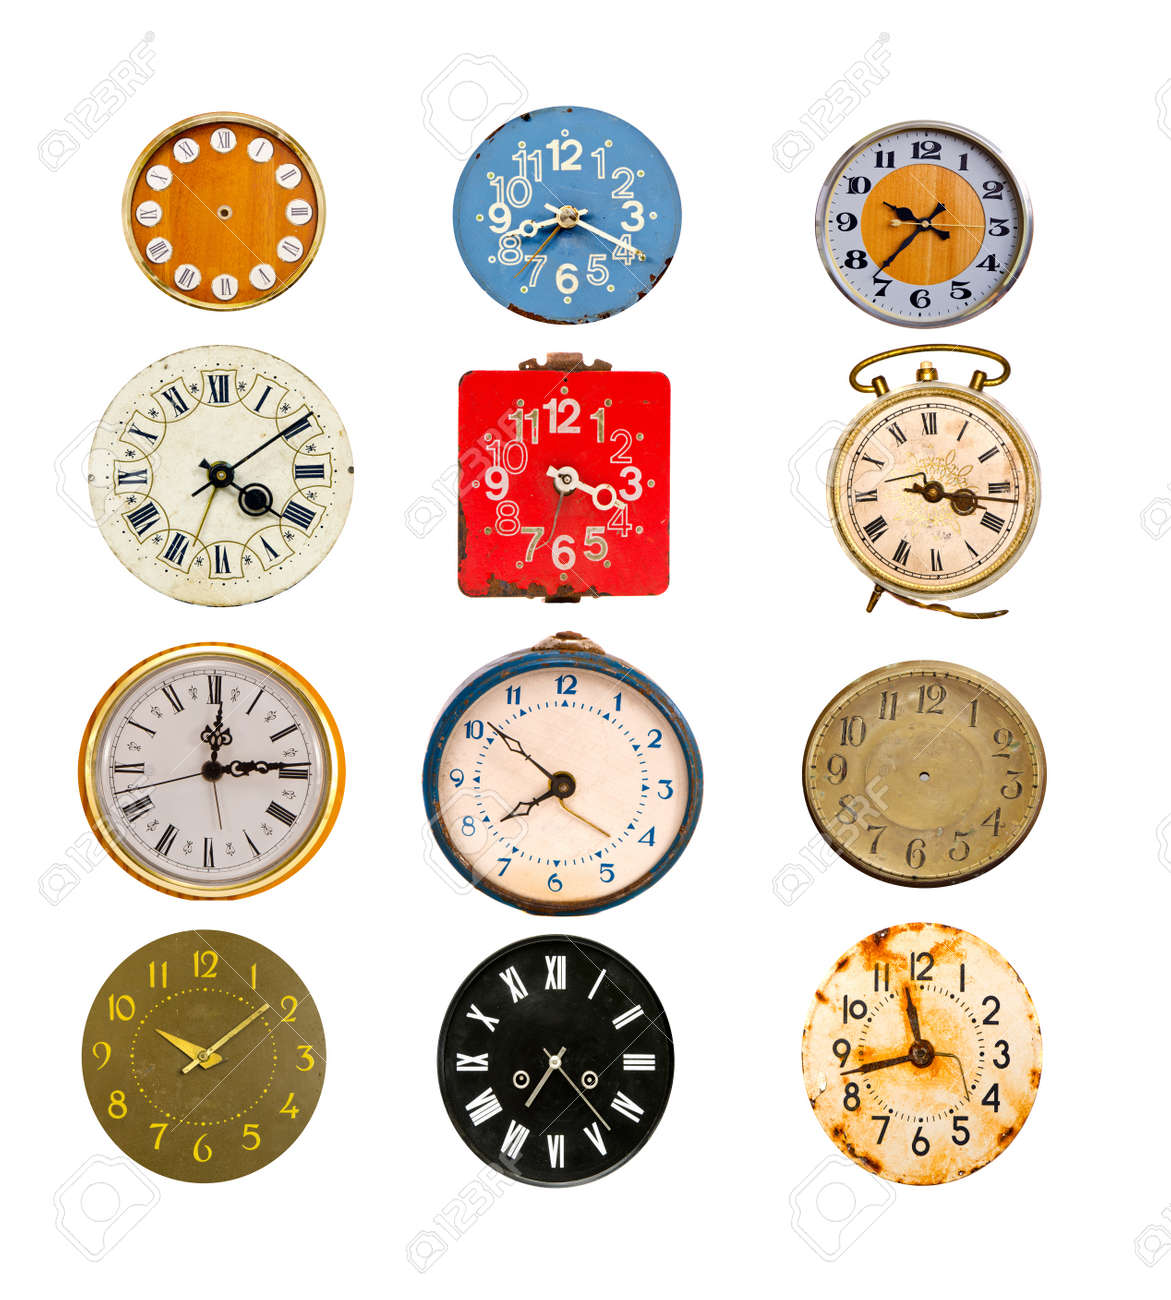 antique colorful clock dial collection isolated on white - 16133579